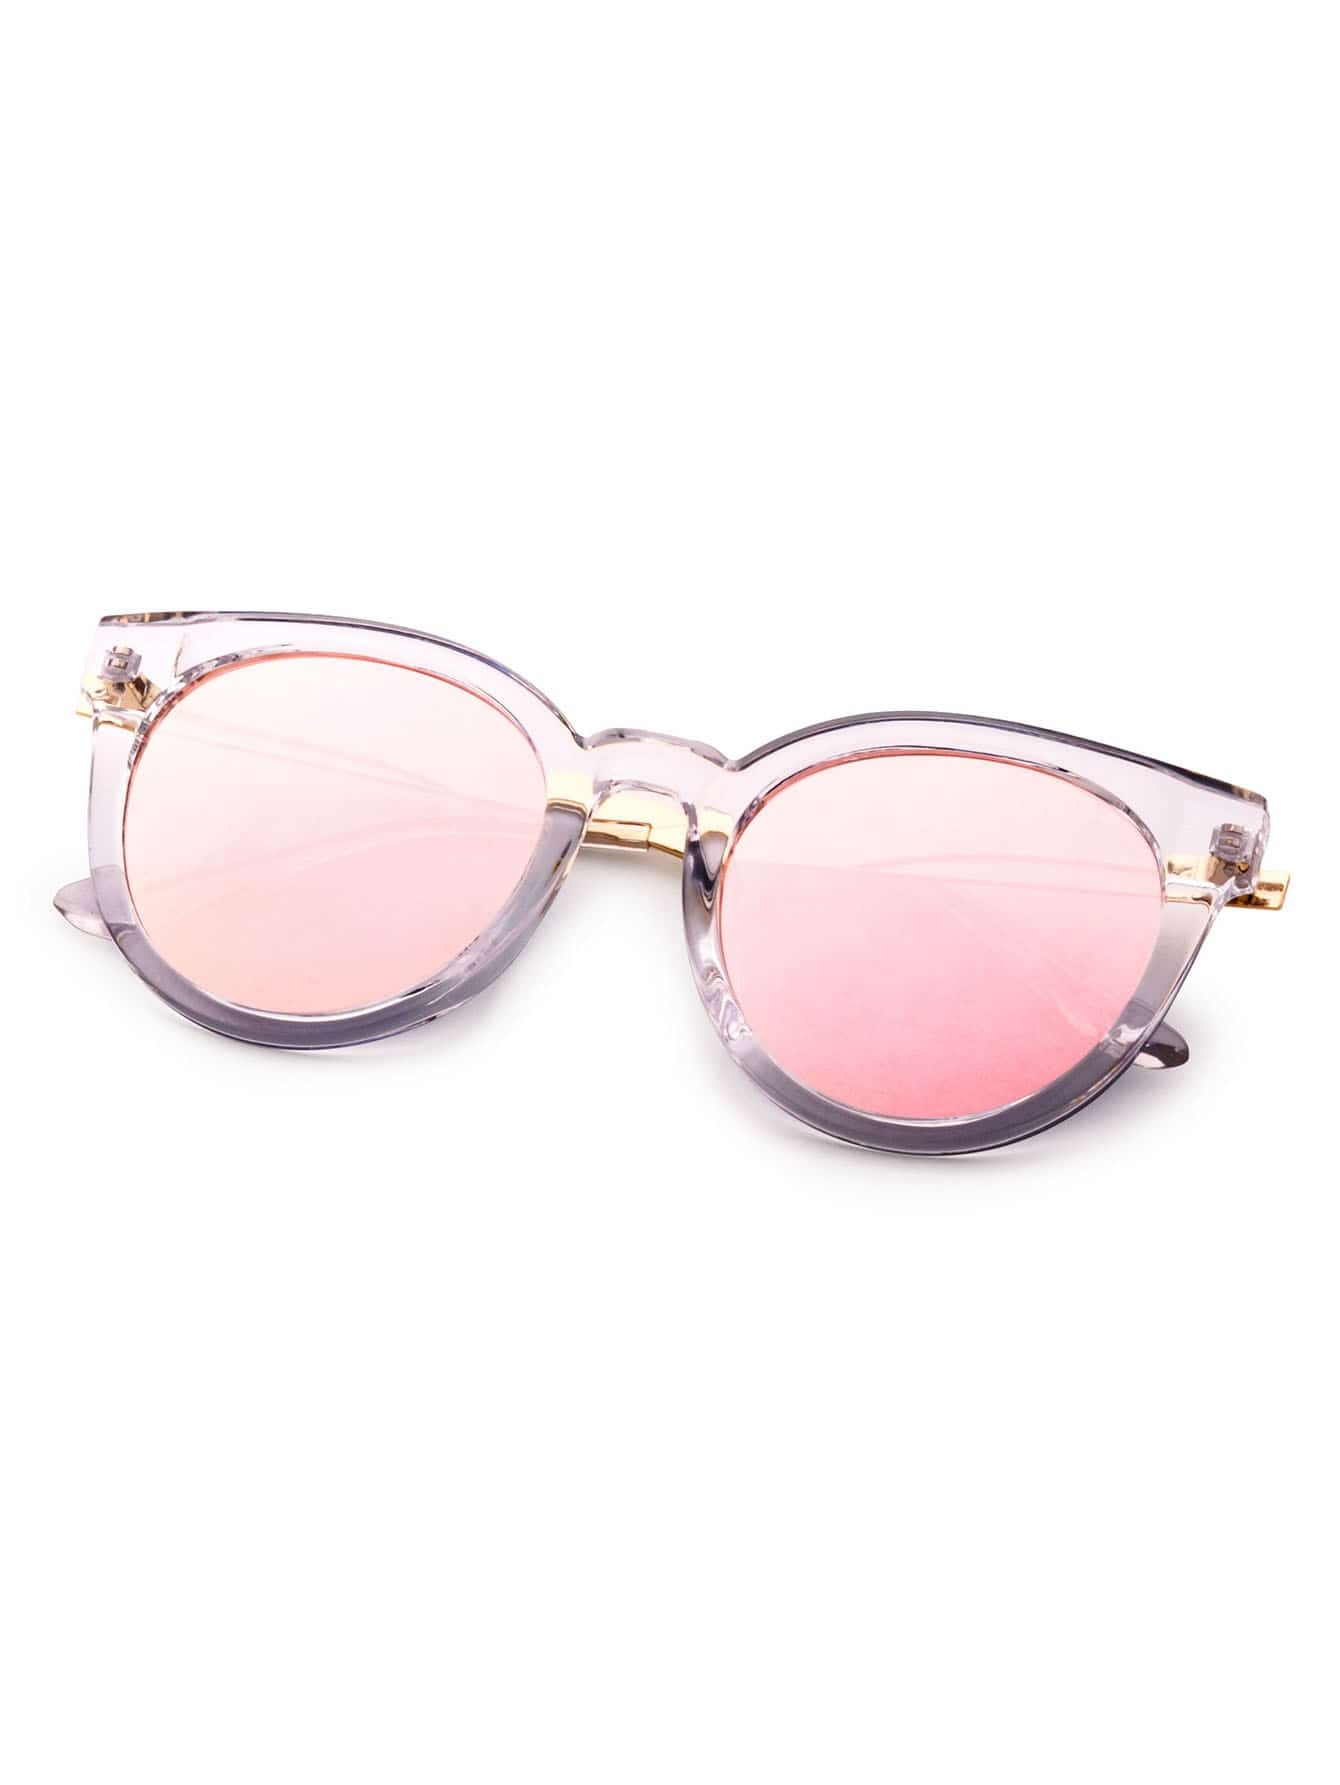 Pink Lens Clear Cat Eye Frame Sunglasses -SheIn(Sheinside)